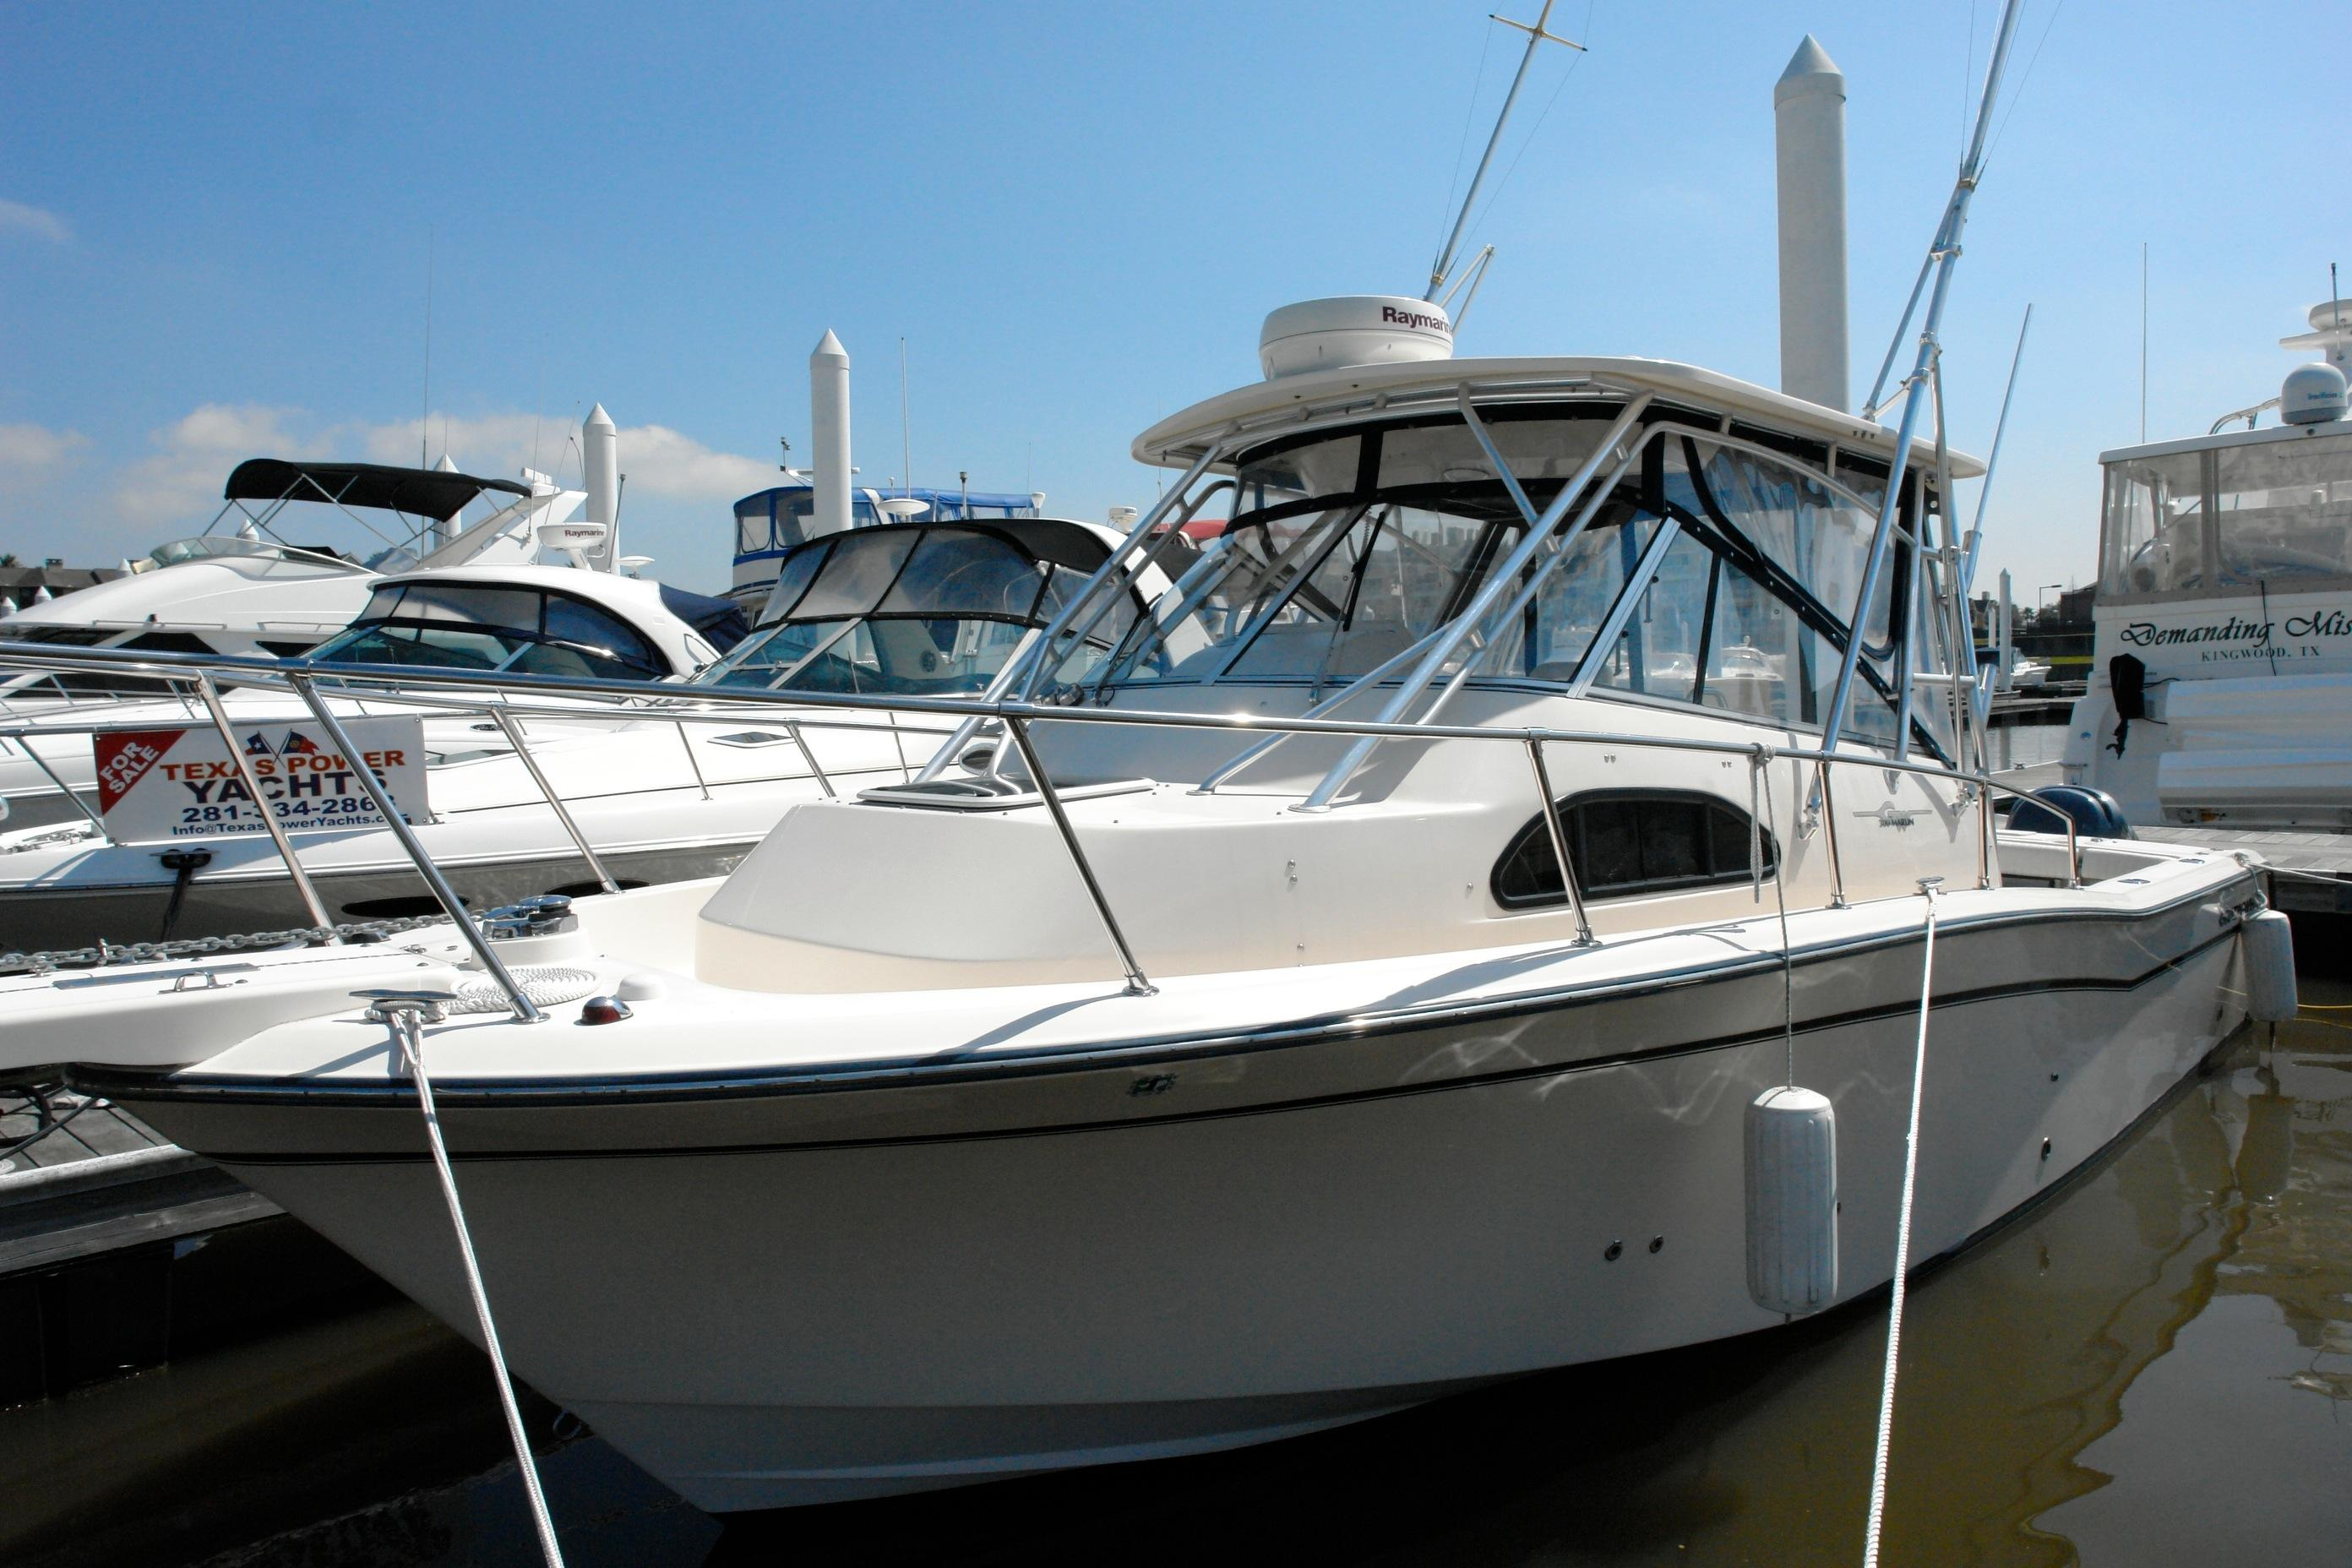 Marlin (TX) United States  City pictures : 2006 Grady White Marlin 300 Power Boat For Sale www.yachtworld.com